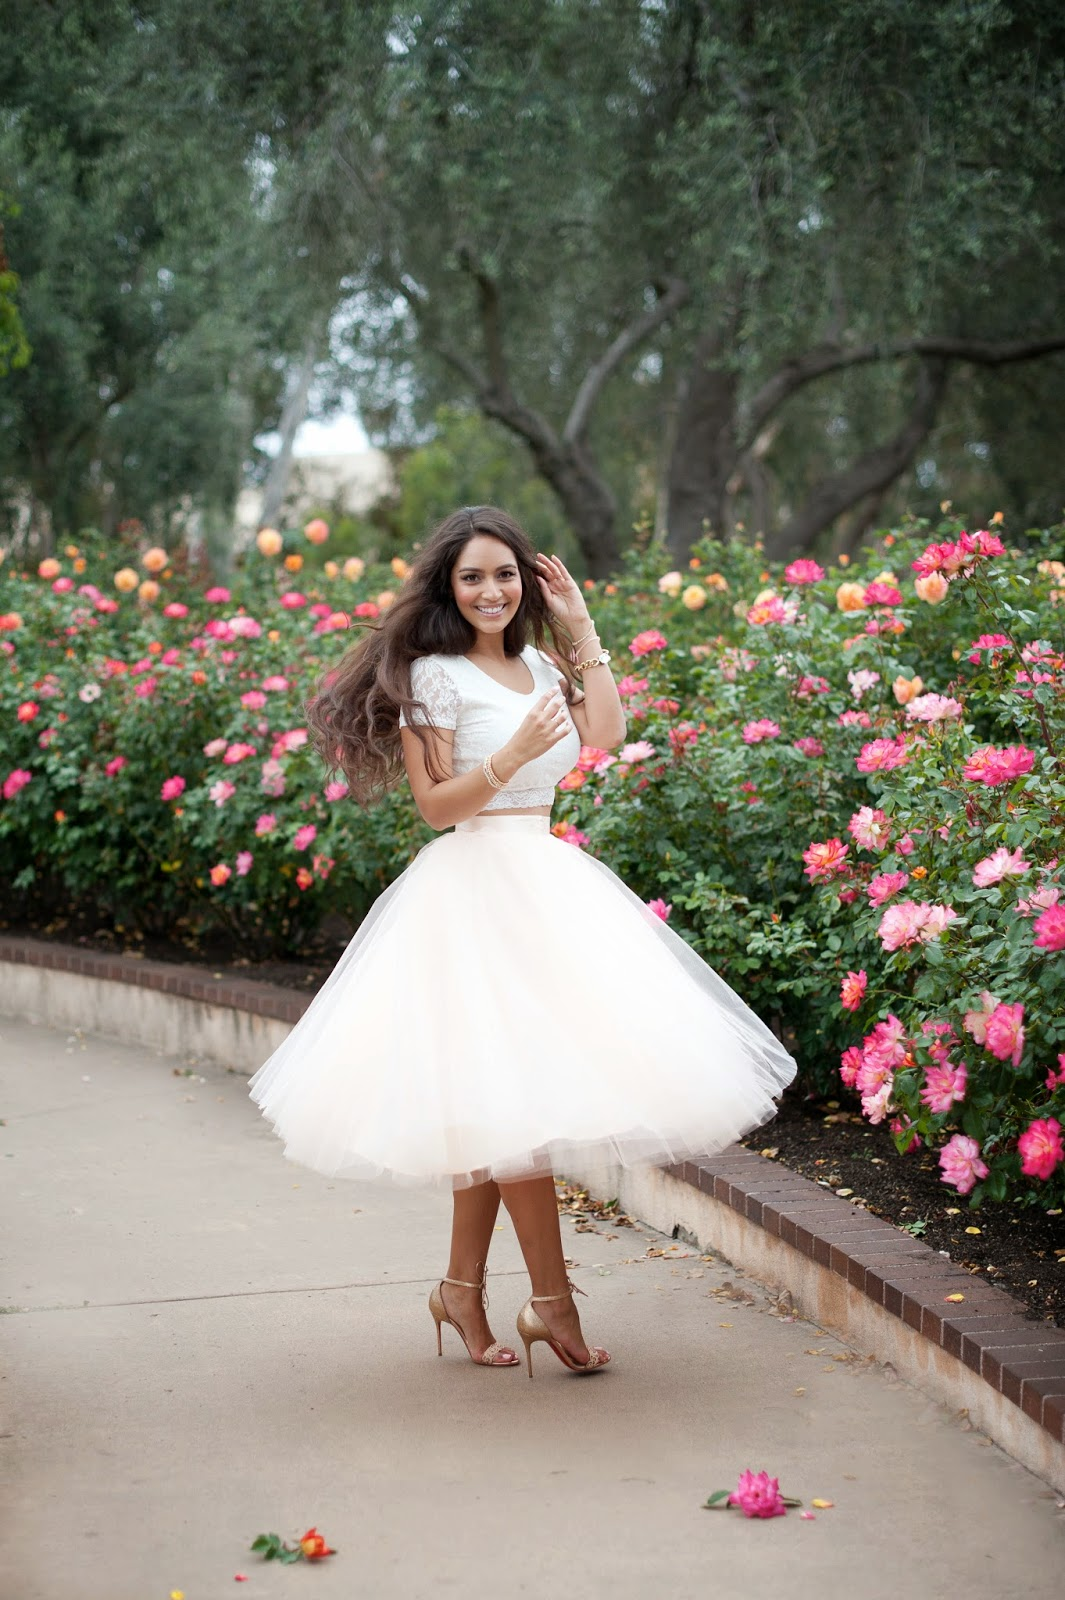 Vanessa Balli is wearing a tulle skirt from Space 46, shoes from Christian Loboutin and a lace crop top from Nordstroem